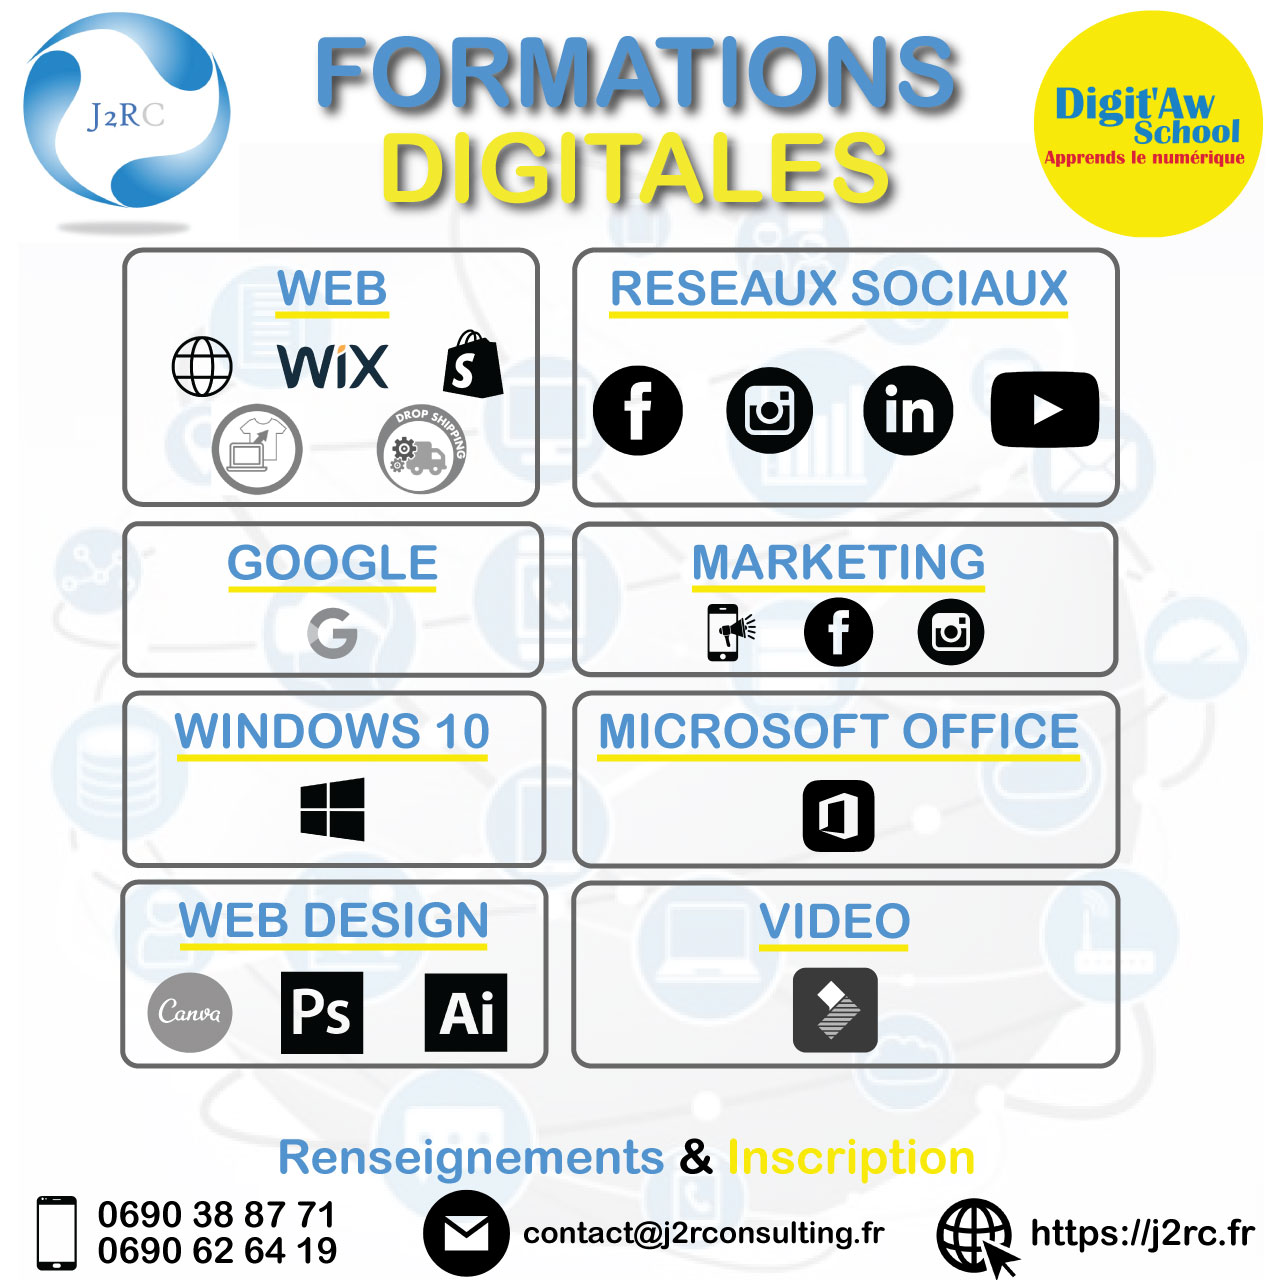 FORMATIONS DIGITALES